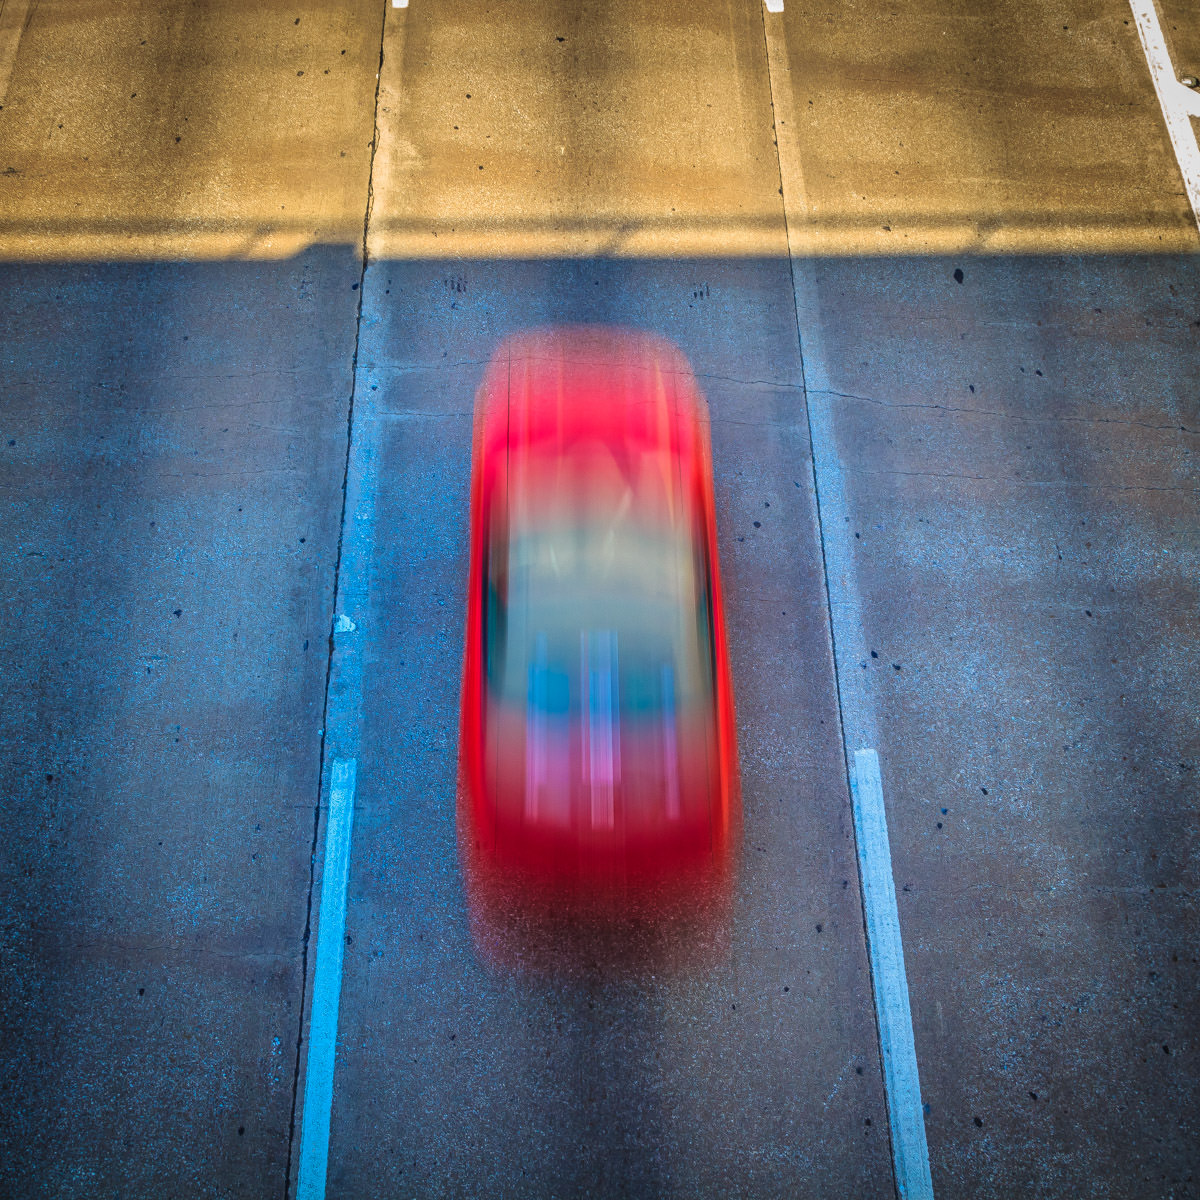 A car speeds along Dallas' Woodall Rogers Freeway in this shot from a bridge over the roadway.